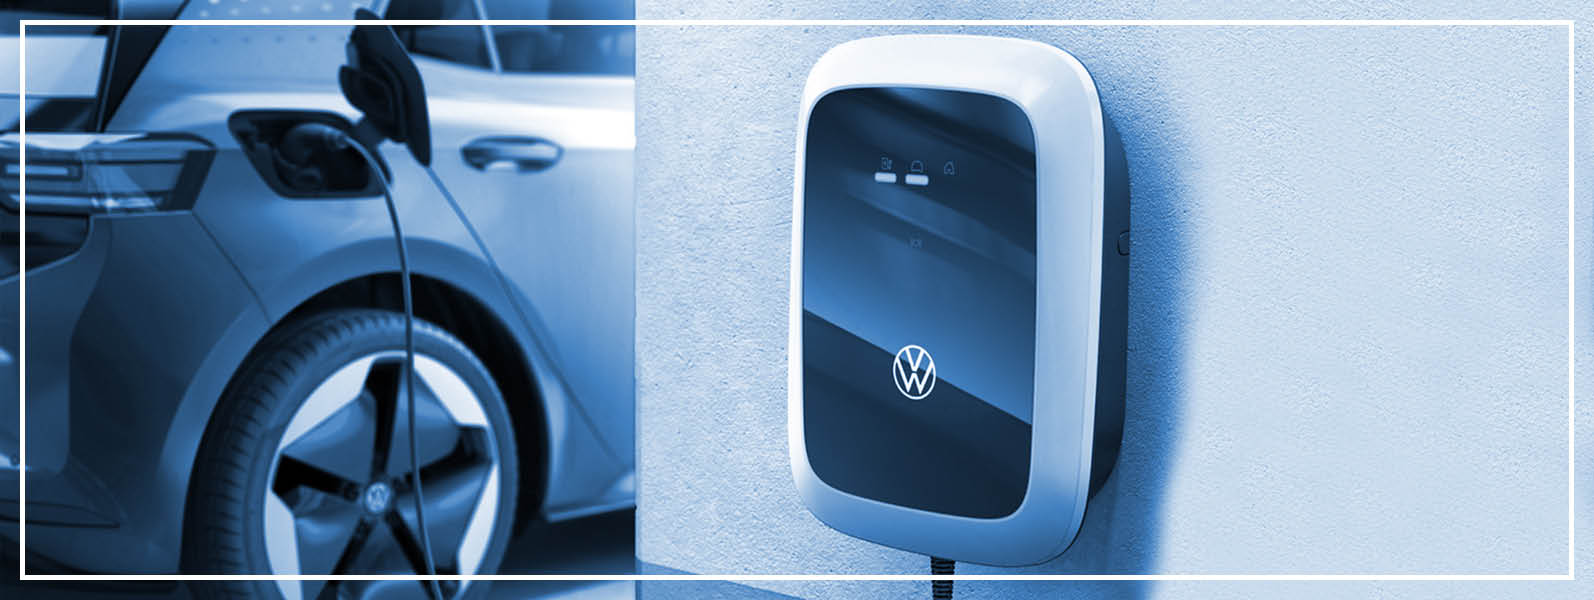 volkswagen-wallbox-idcharger-charger-ladestation-eauto